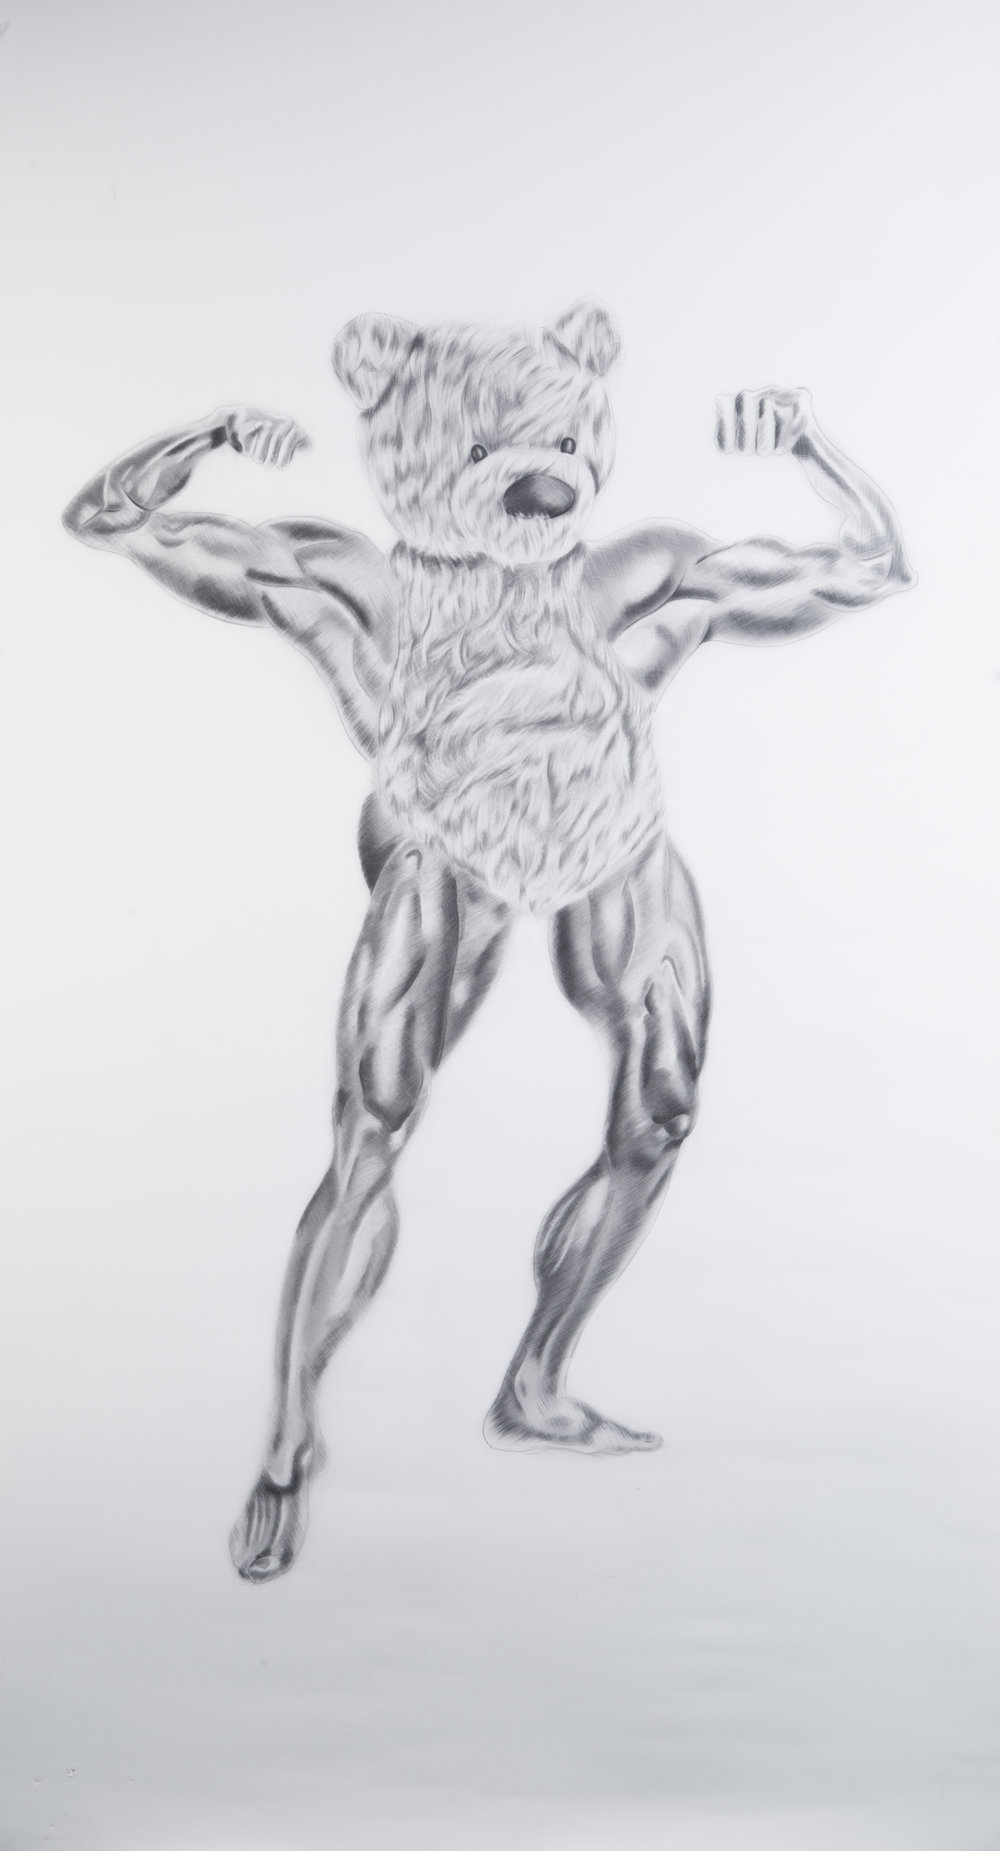 Suns Out Guns Out #1, 24 x 39 inches. Graphite on paper. 2017